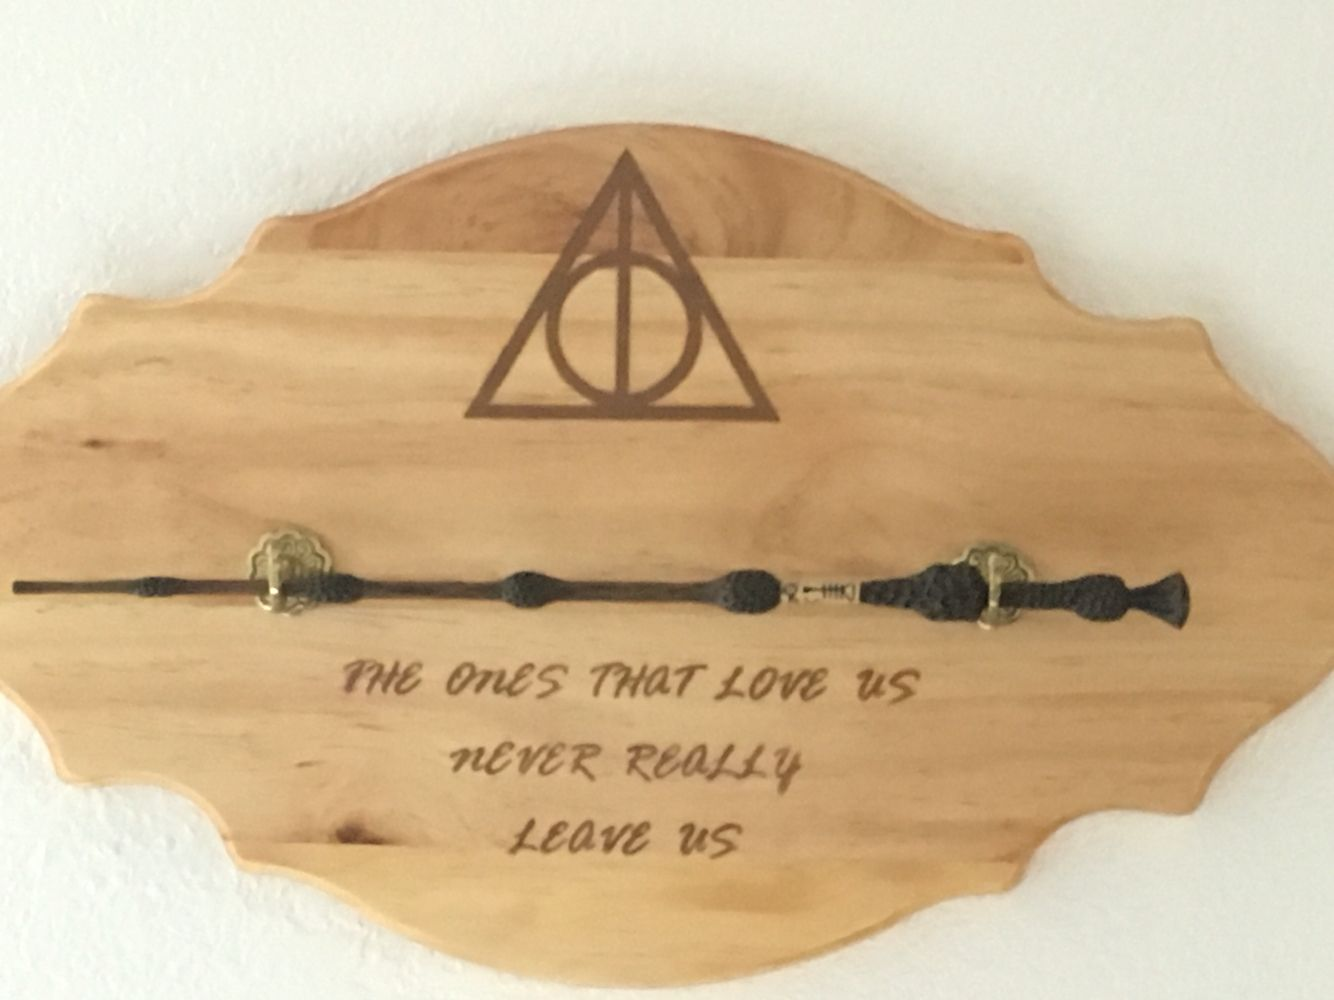 Harry Potter Wand Display The Ones That Love Us Never Really Leave Us Harry Potter Room Decor Harry Potter Bedroom Harry Potter Wand